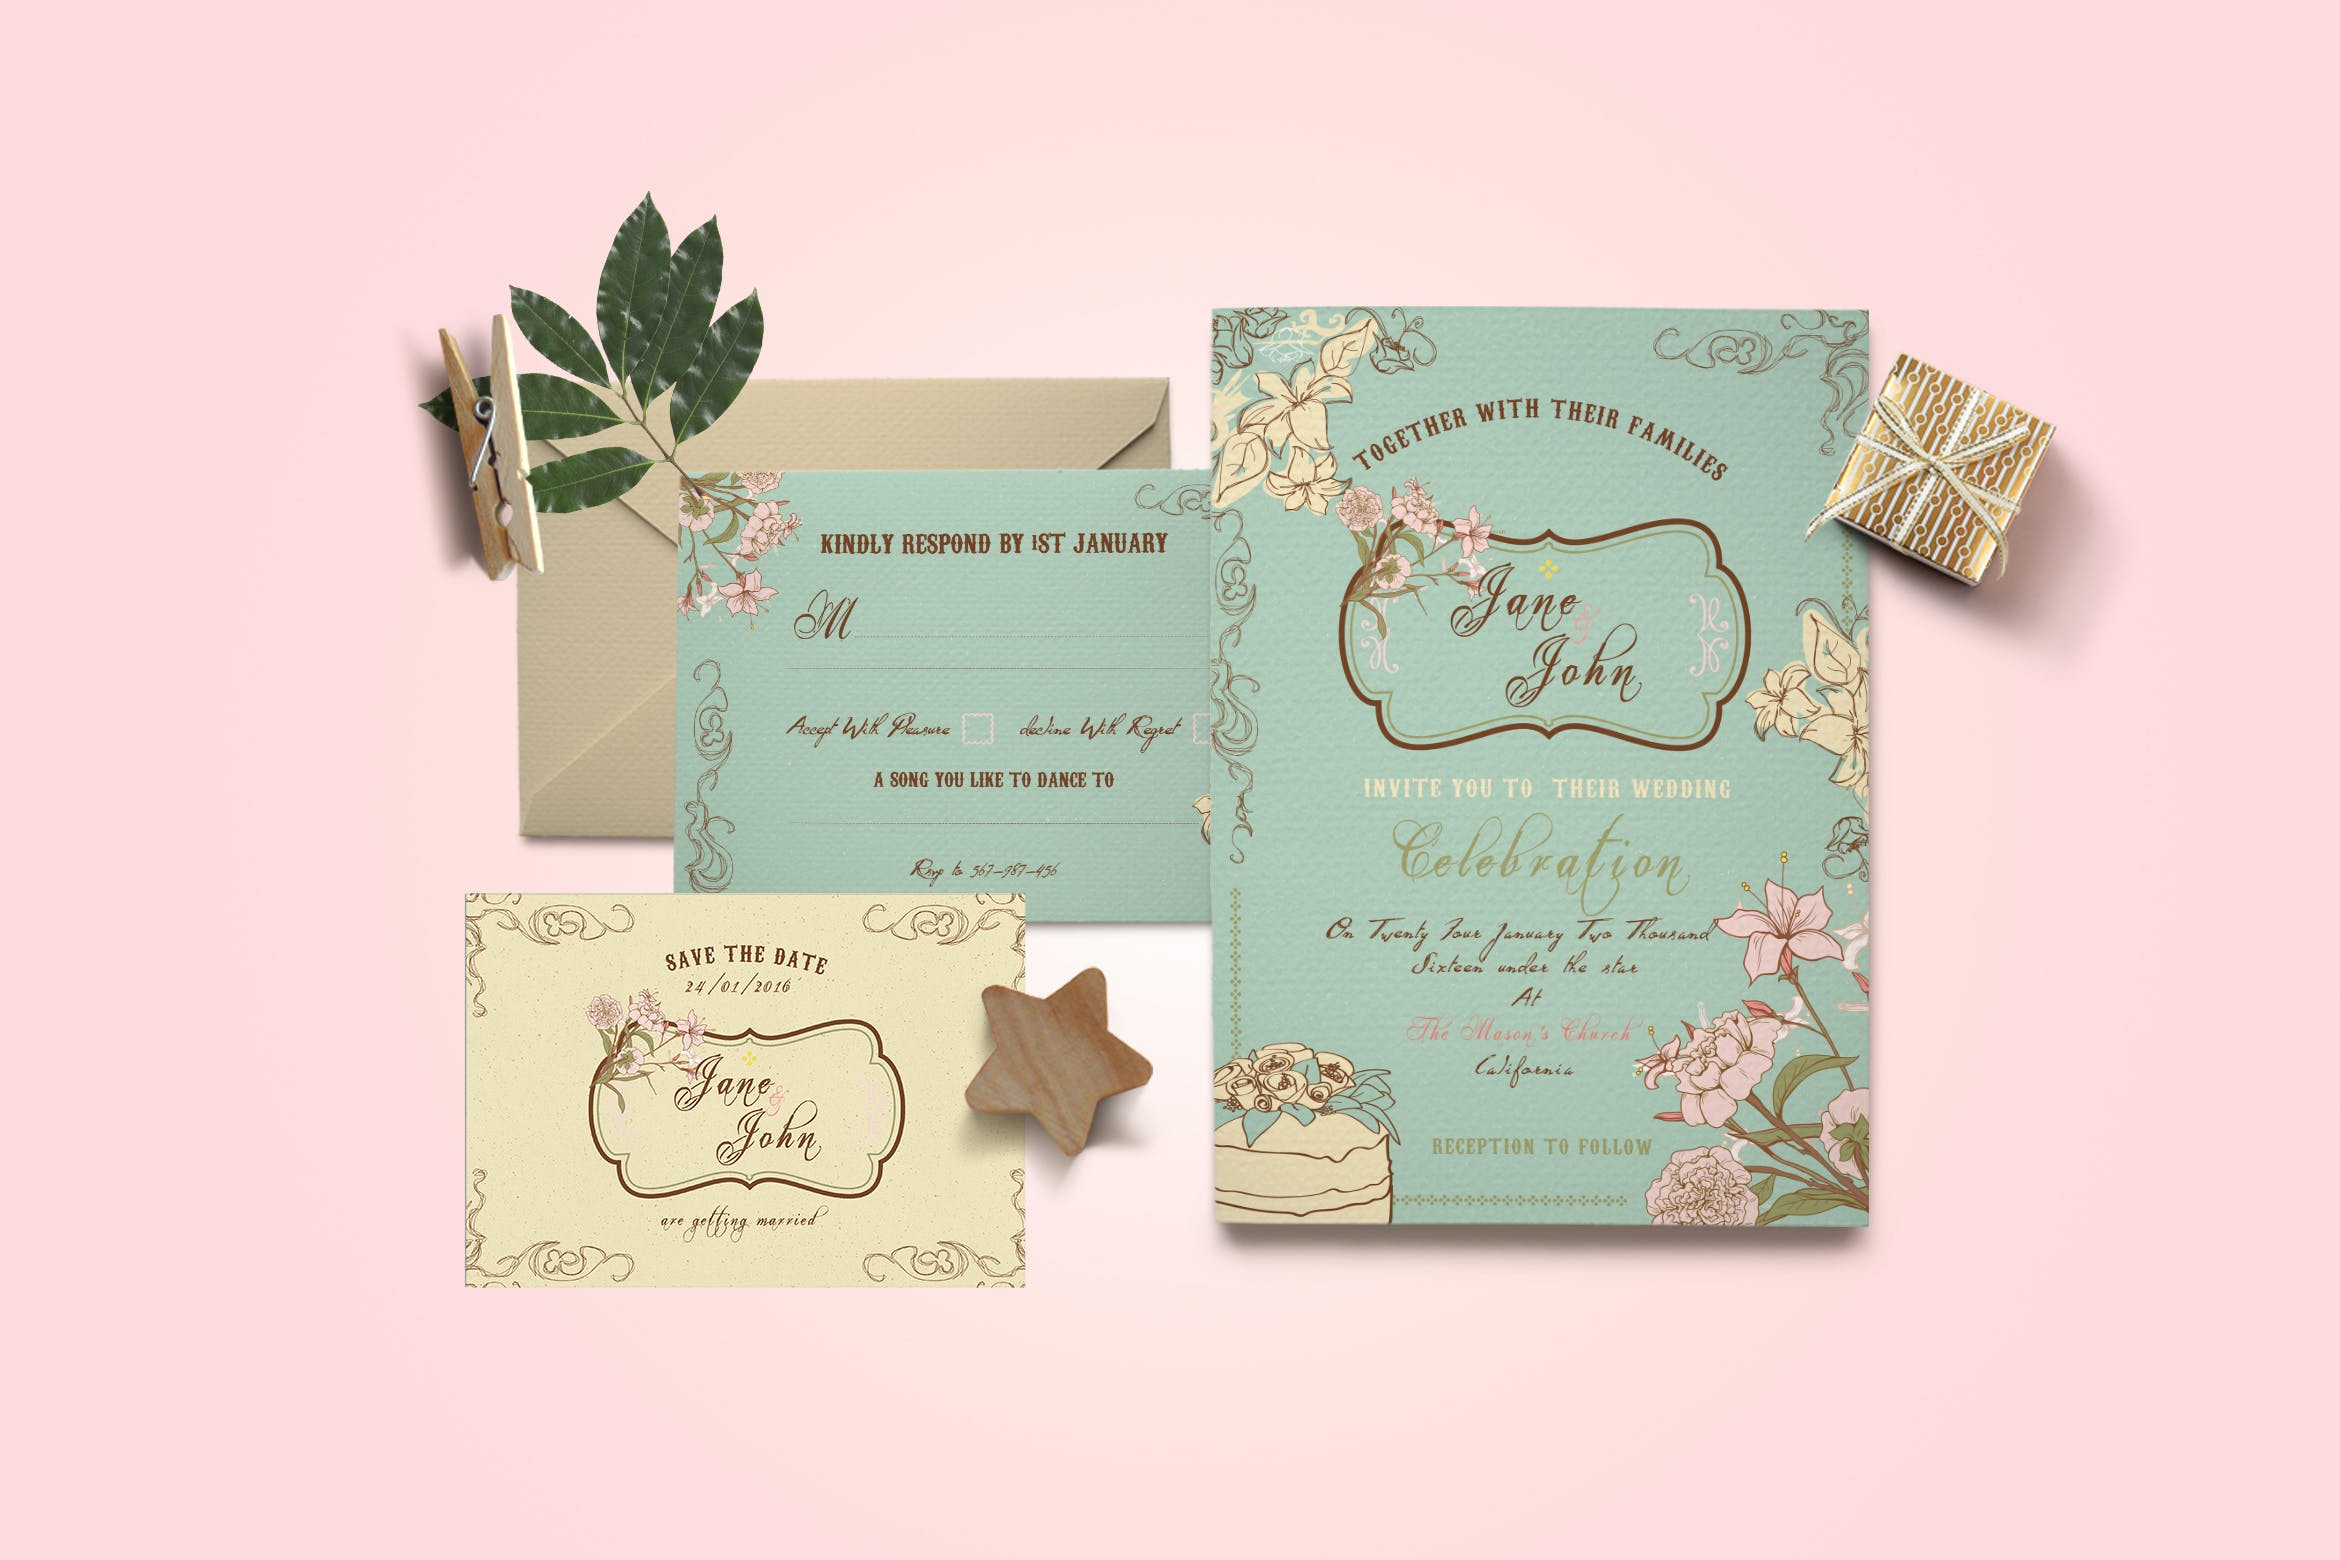 Diy Vintage Wedding Invitation Psd Template By Squirrel92 On Envato Elements